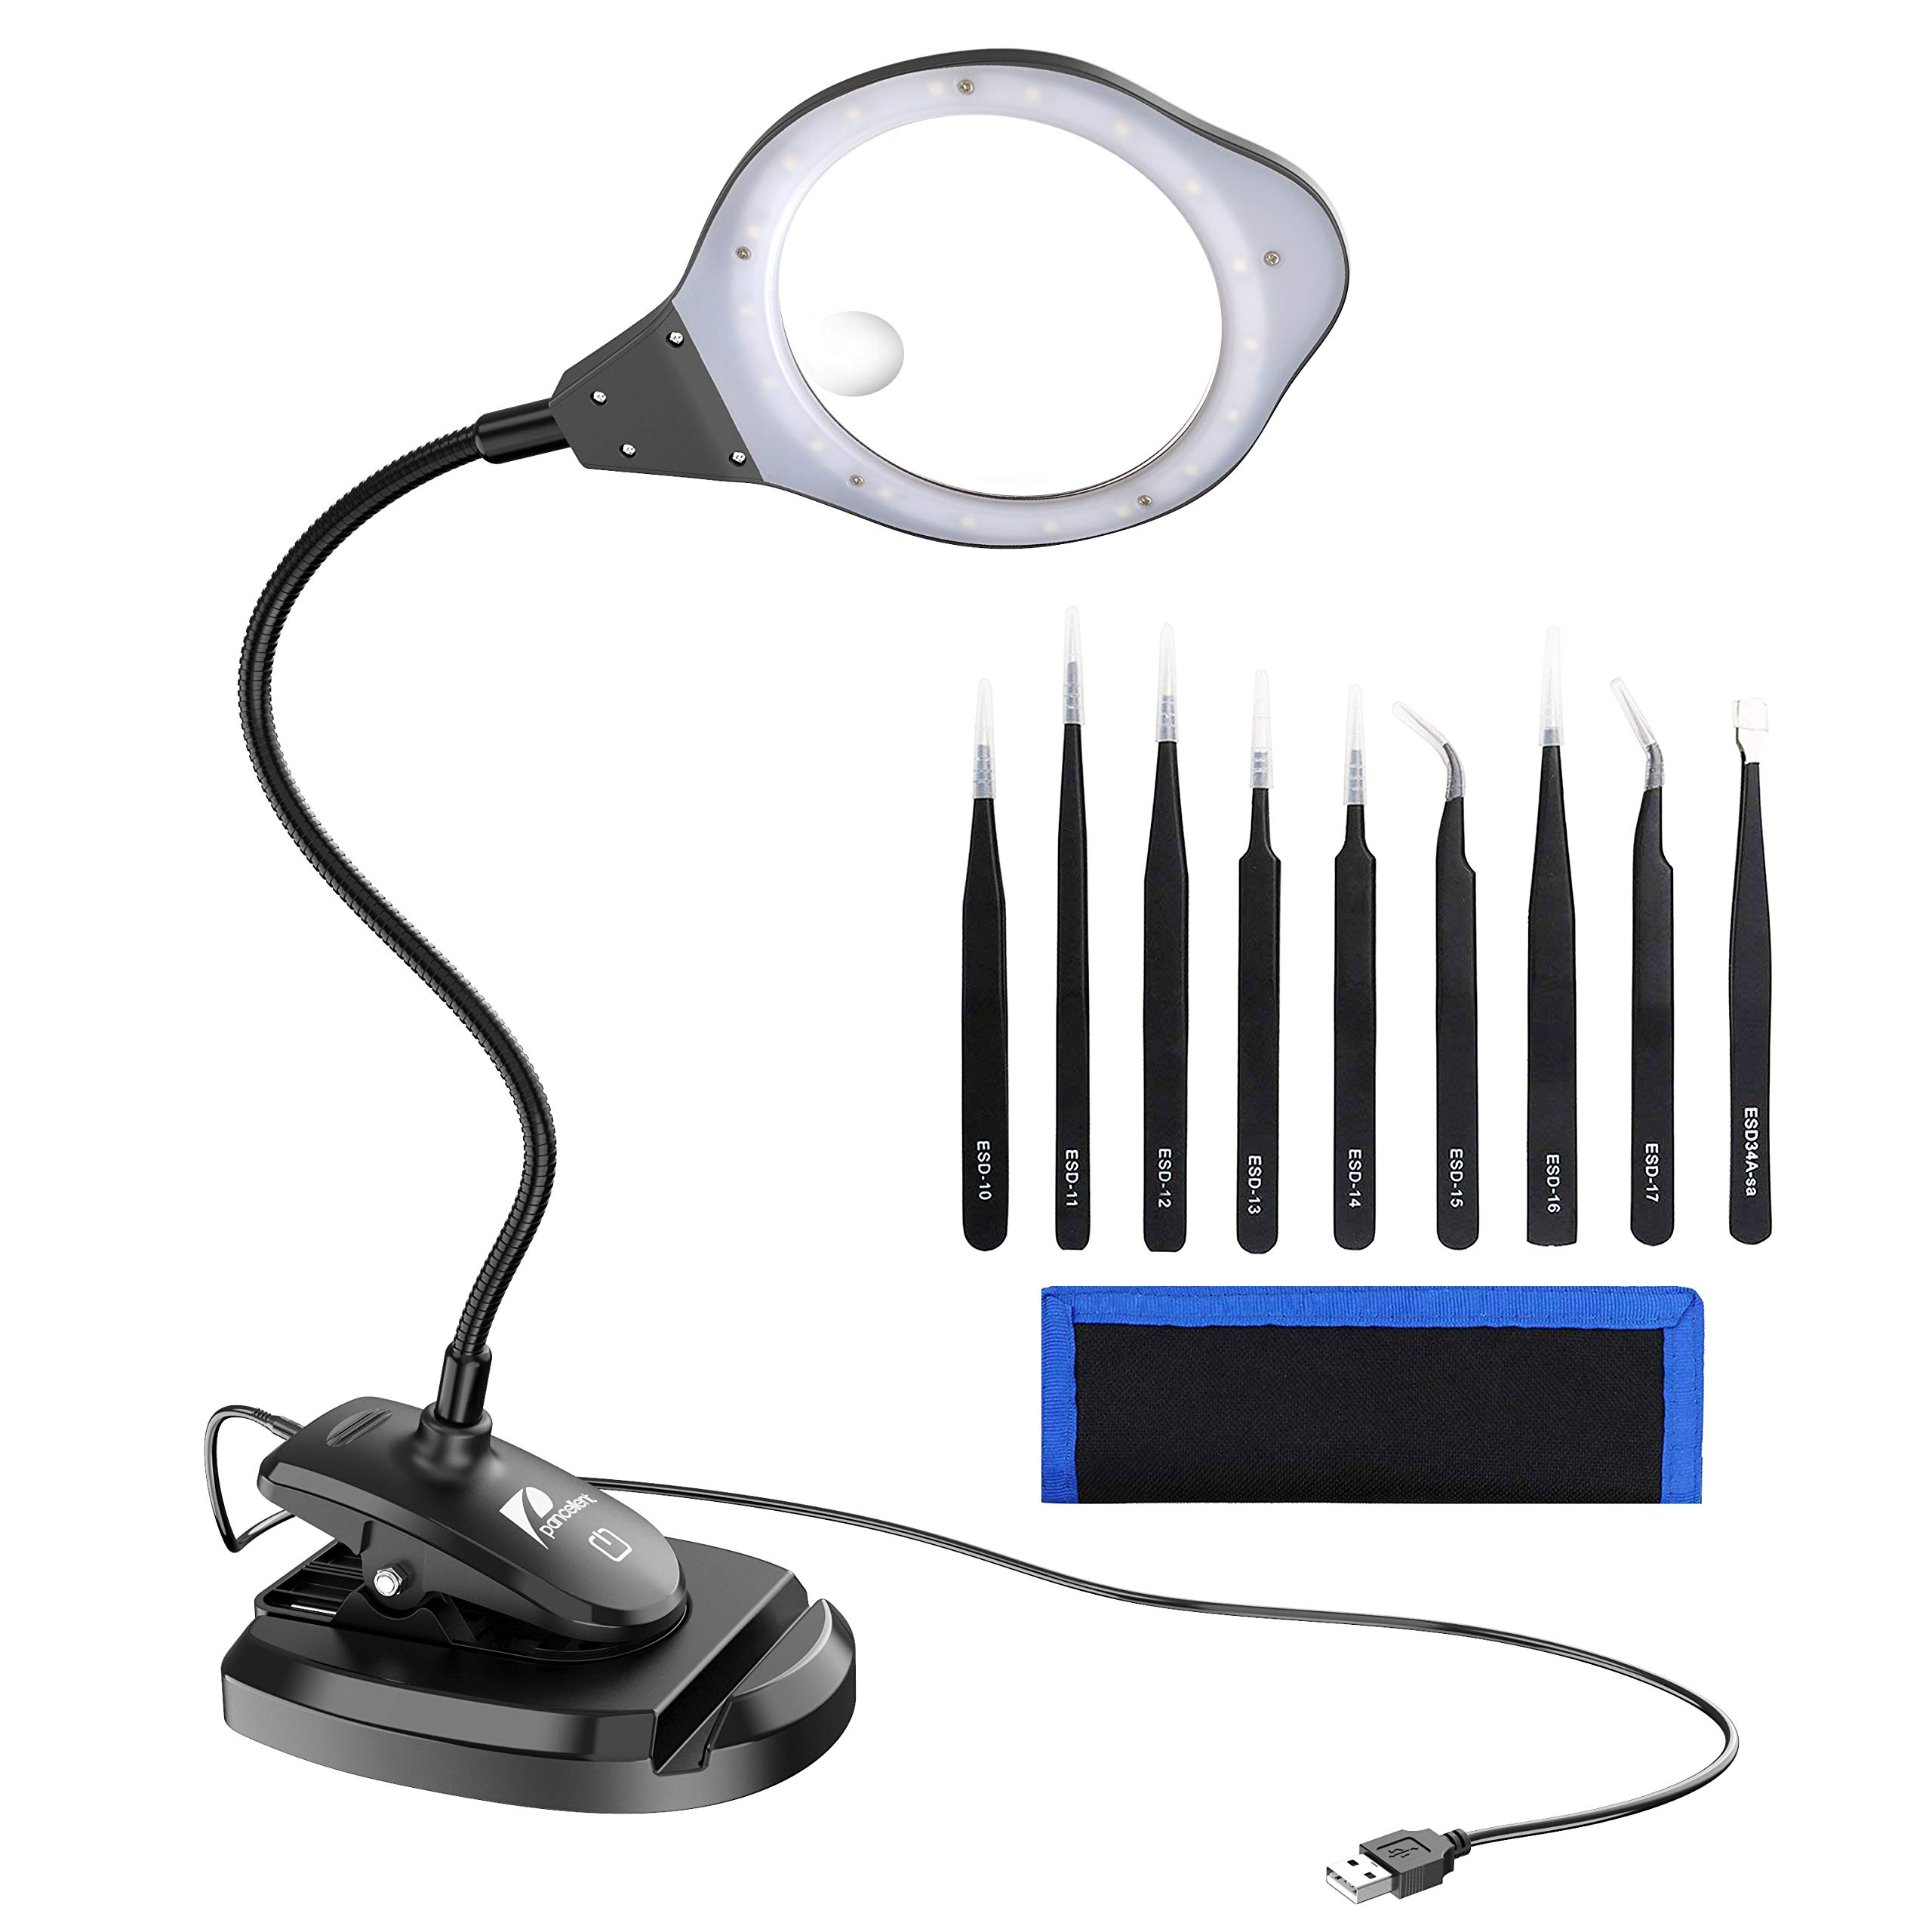 Pancellent 2-in-1 Magnifying Glass LED Lamp with Precision Tweezers Set (9 Pcs), 2X/4X Lighted Magnifier with Stand and Clamp for Desk, Sewing, Table by Pancellent